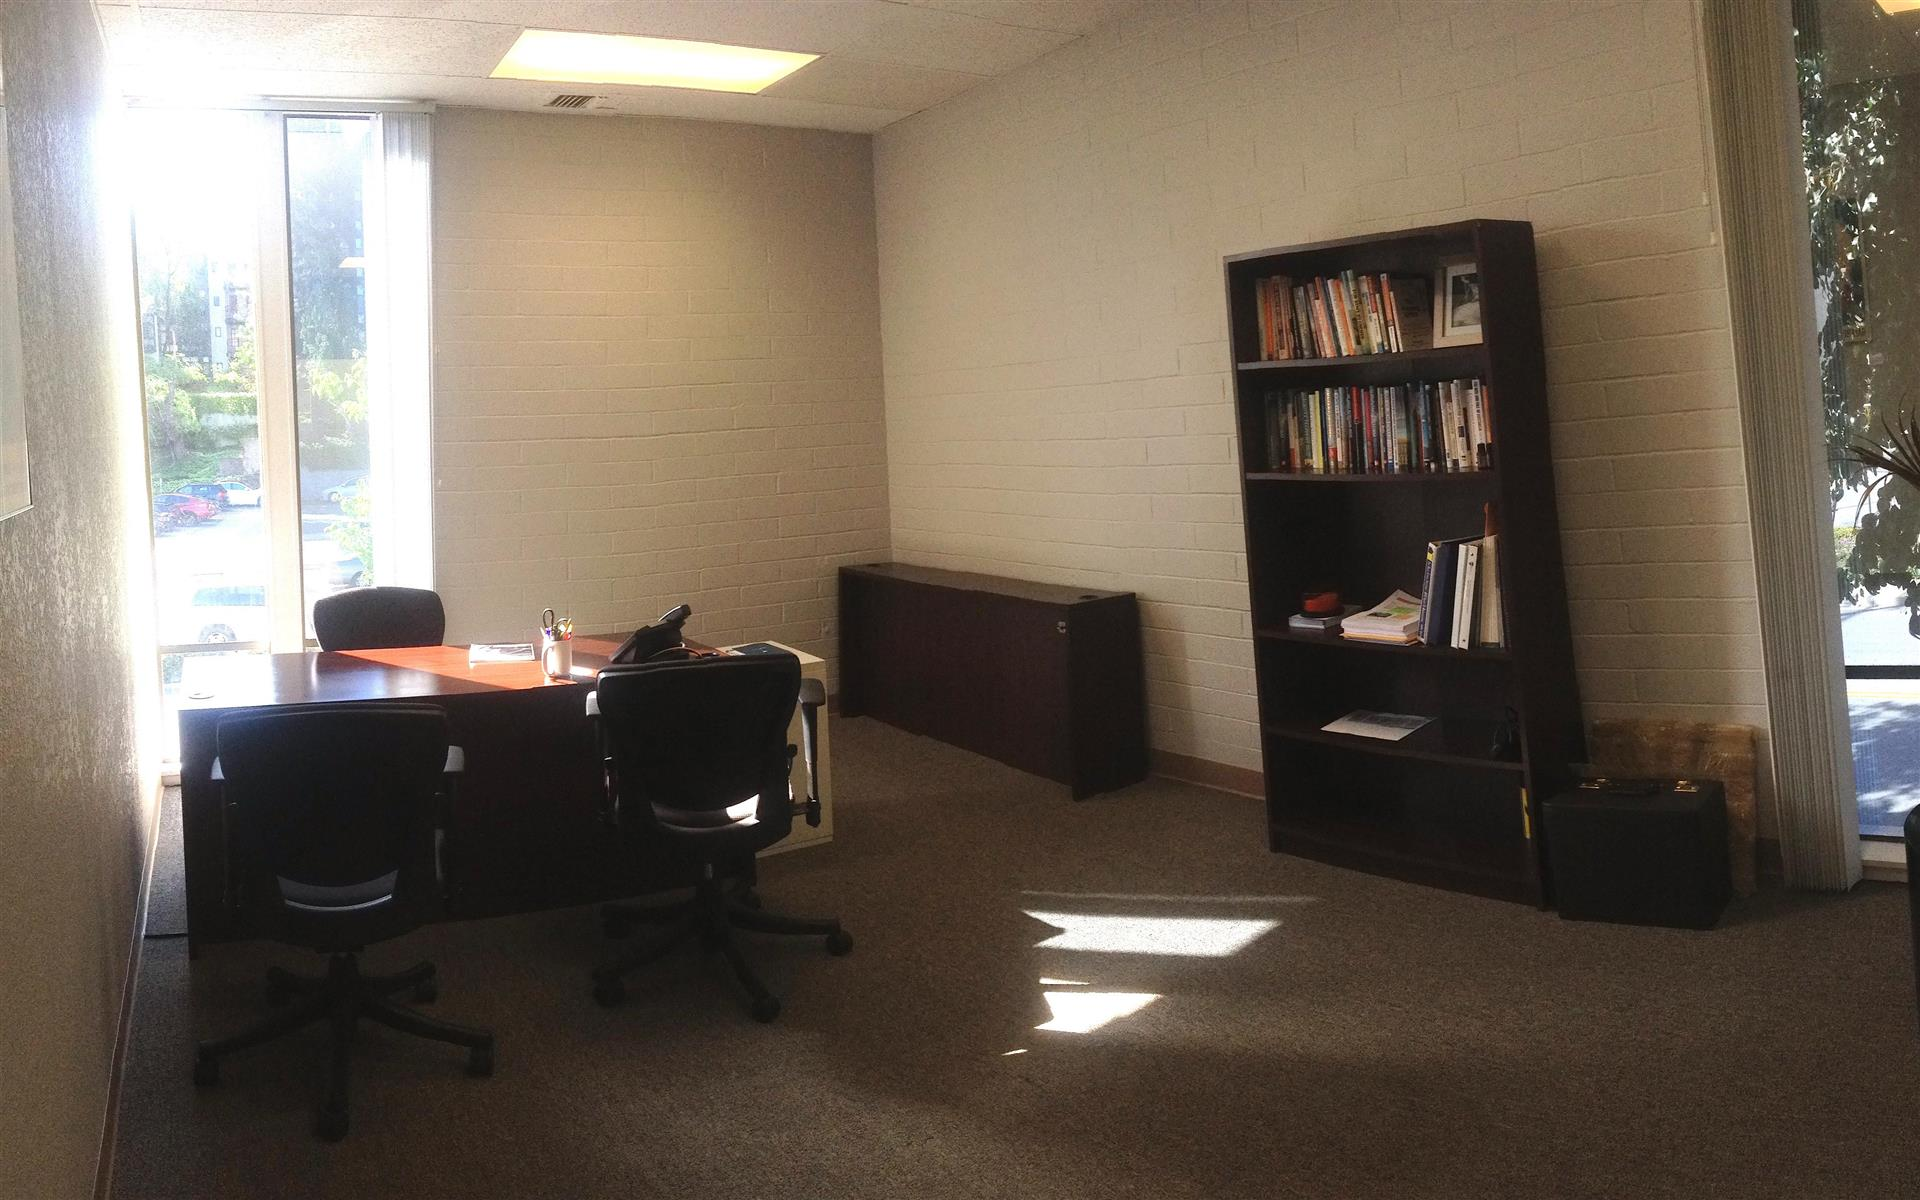 Real Wealth Network - Office #1: Sunny, large office